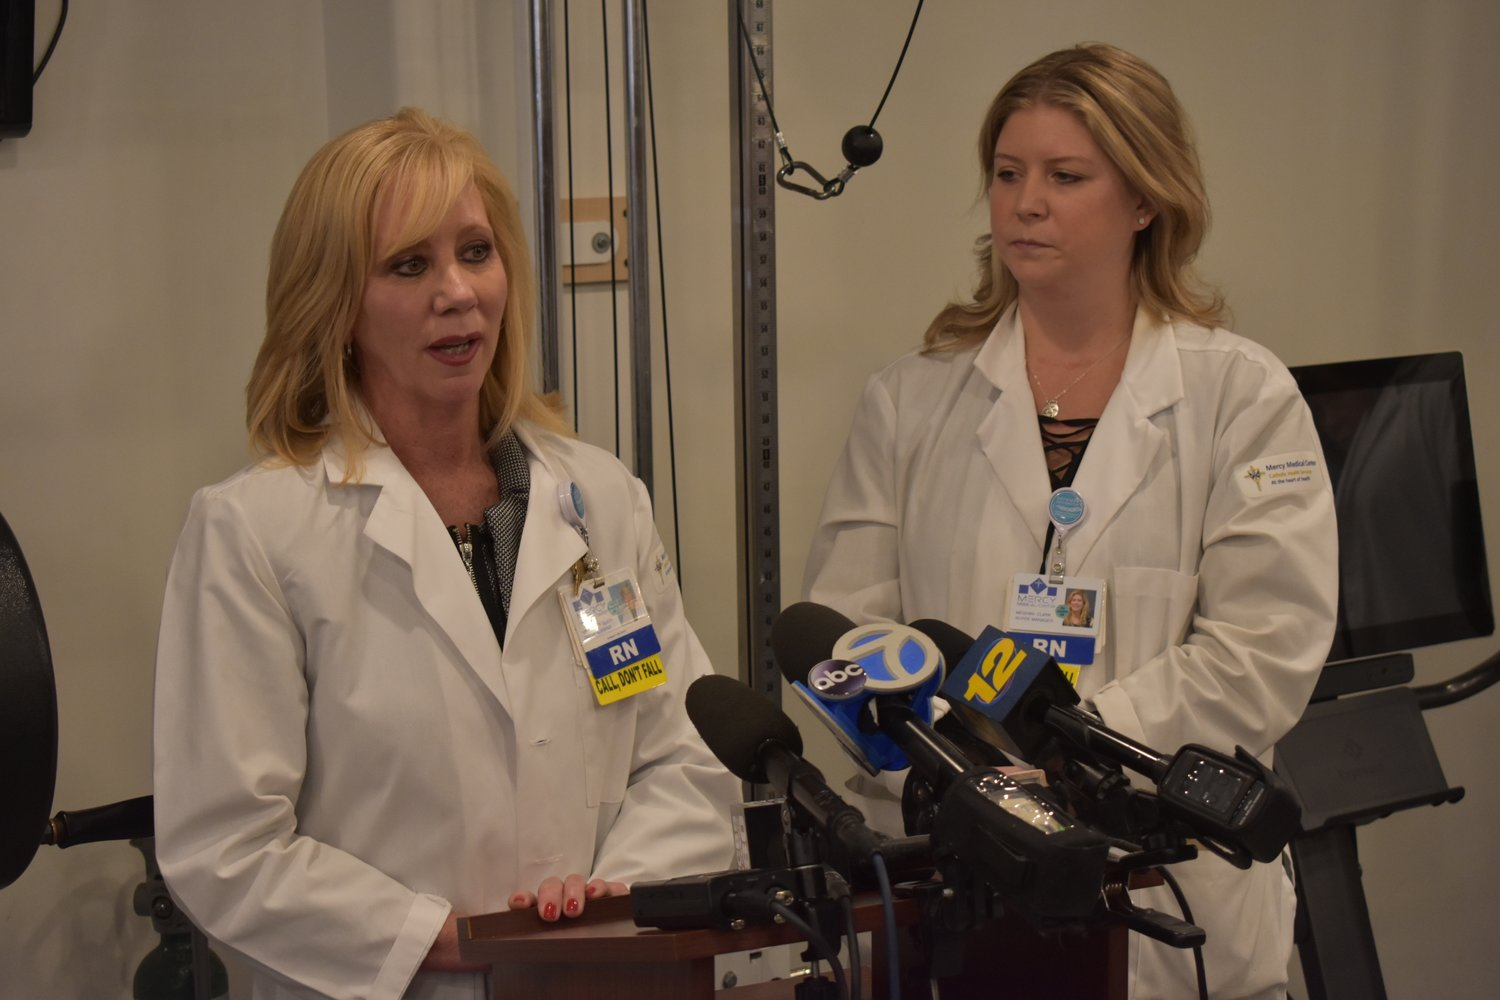 At a Jan. 31 news conference, Maggie Glier, left, director of nursing services at Mercy Medical Center, called Patricia Lewis the most inspirational woman she's ever met. She was joined by Meghan Clark, Mercy's oncology nurse manager.